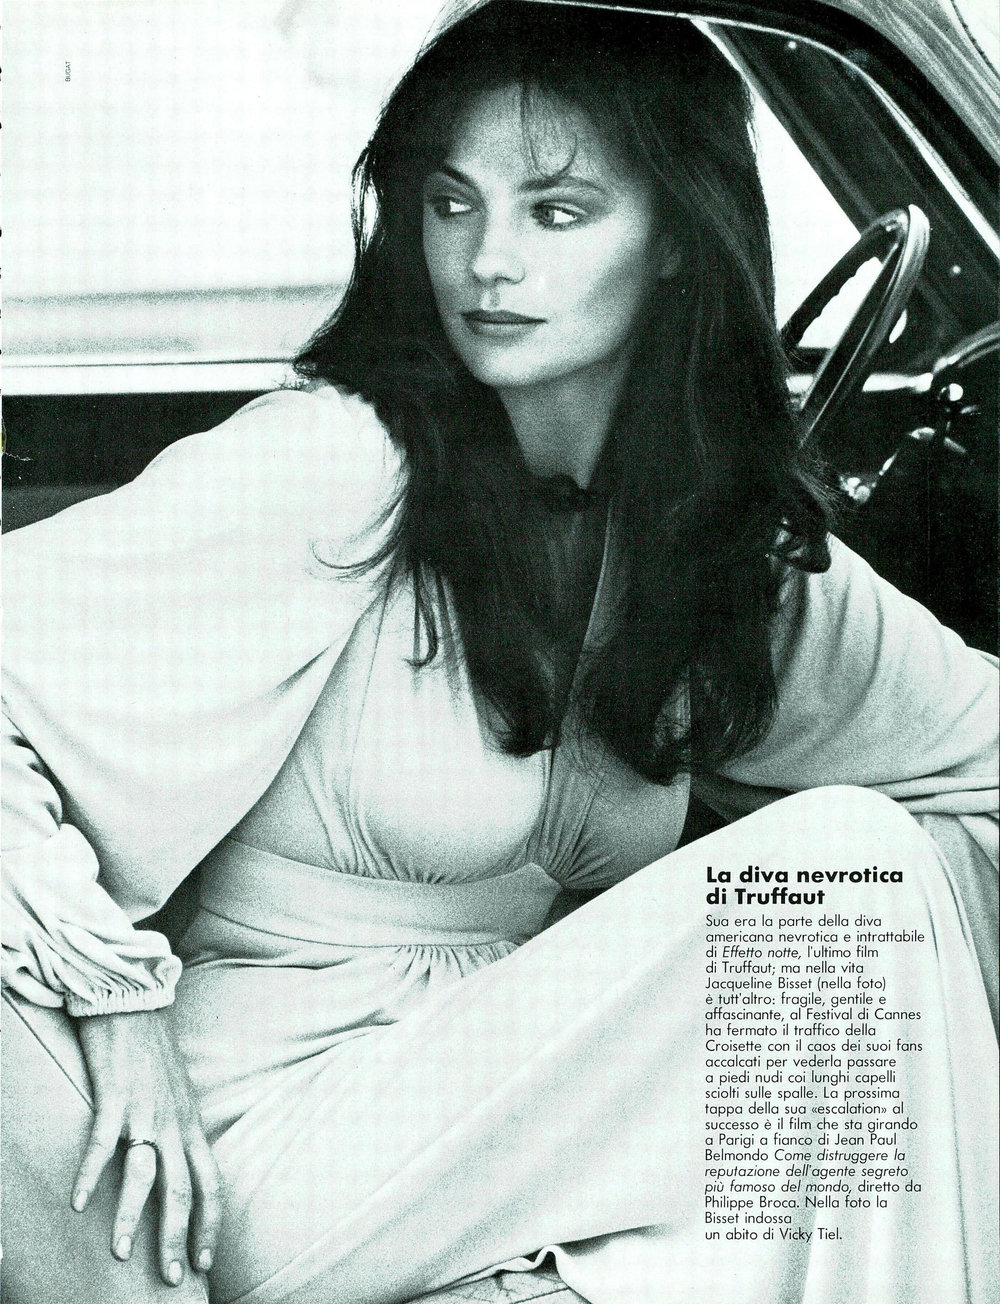 Jacqueline Bisset in a dress by Vicky Tiel. Photo by Bugat for Vogue Italia, January 1974.